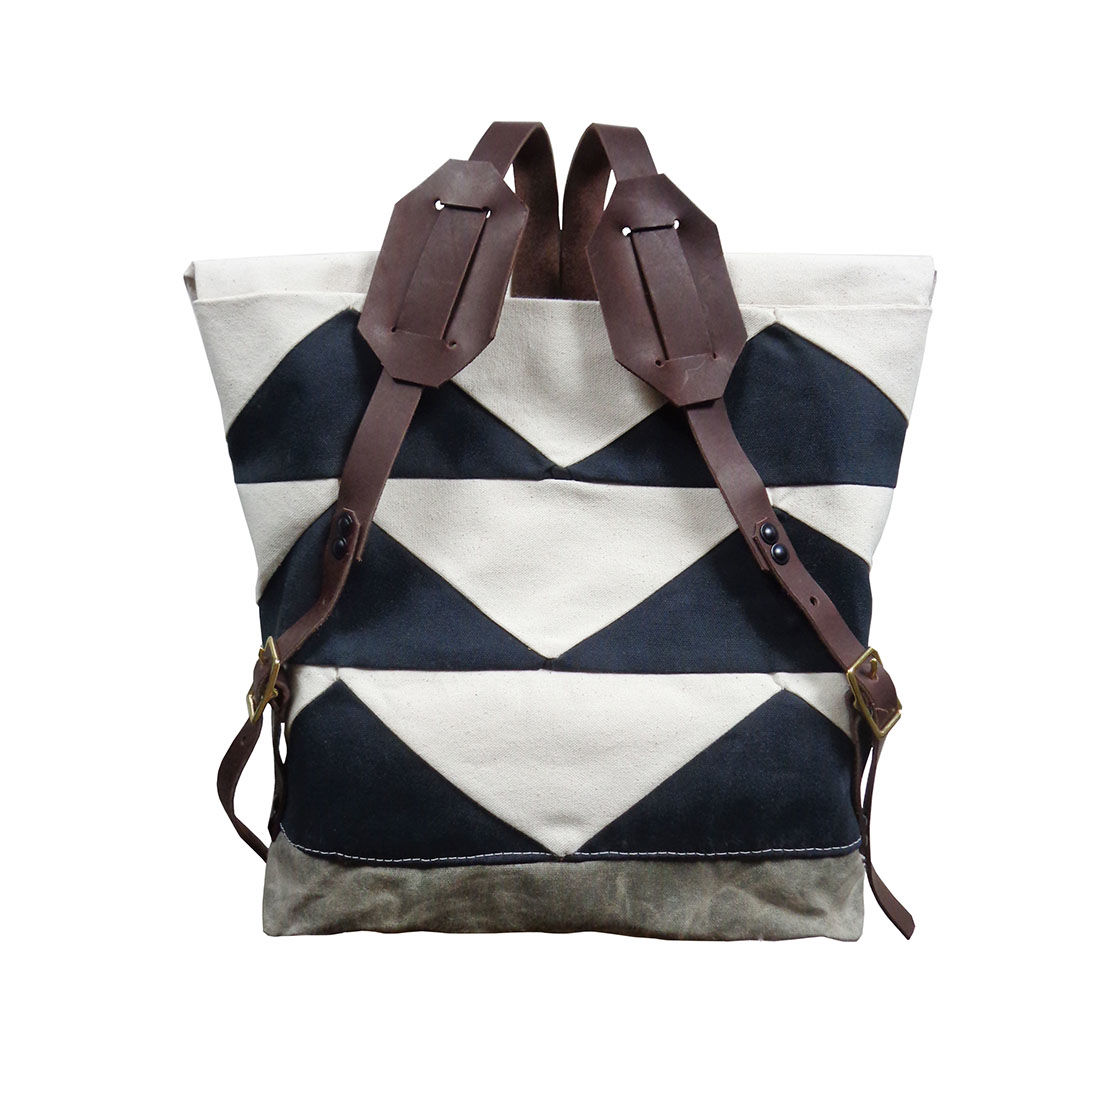 Convertible Tote, Backpack w/ Leather Straps -  Black Bunting Triangle - product images  of